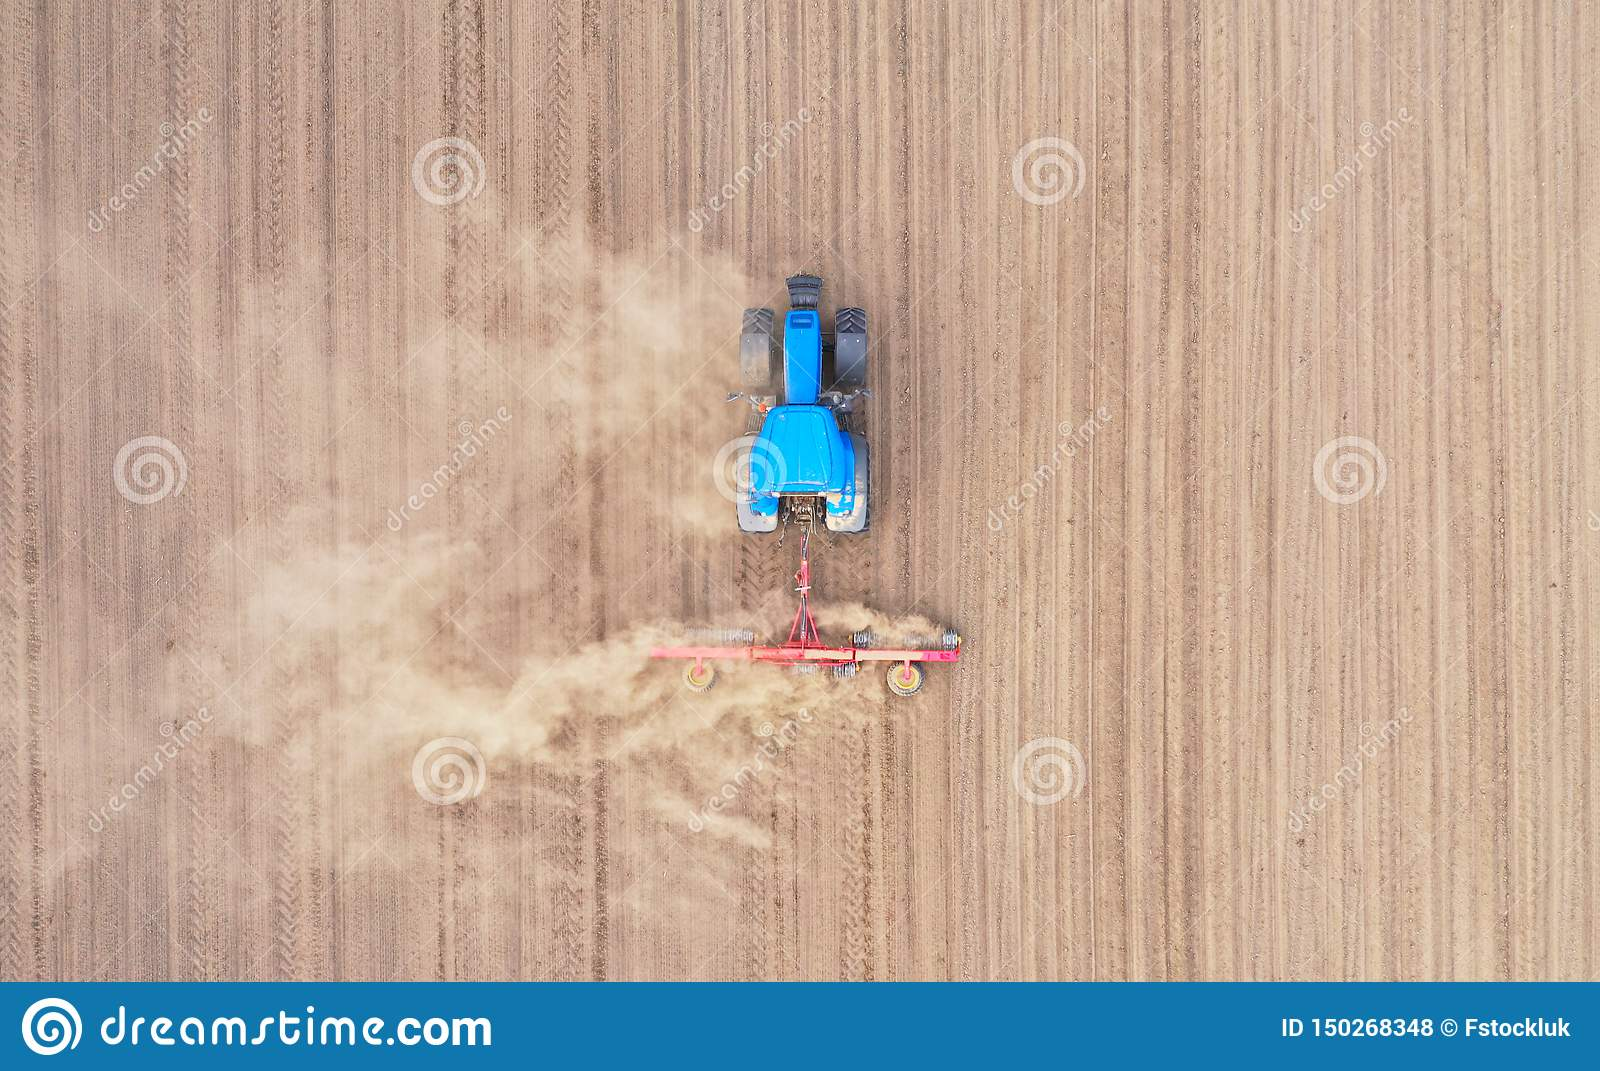 Aerial Top Down View On Blue Tractor Pulling A Plow